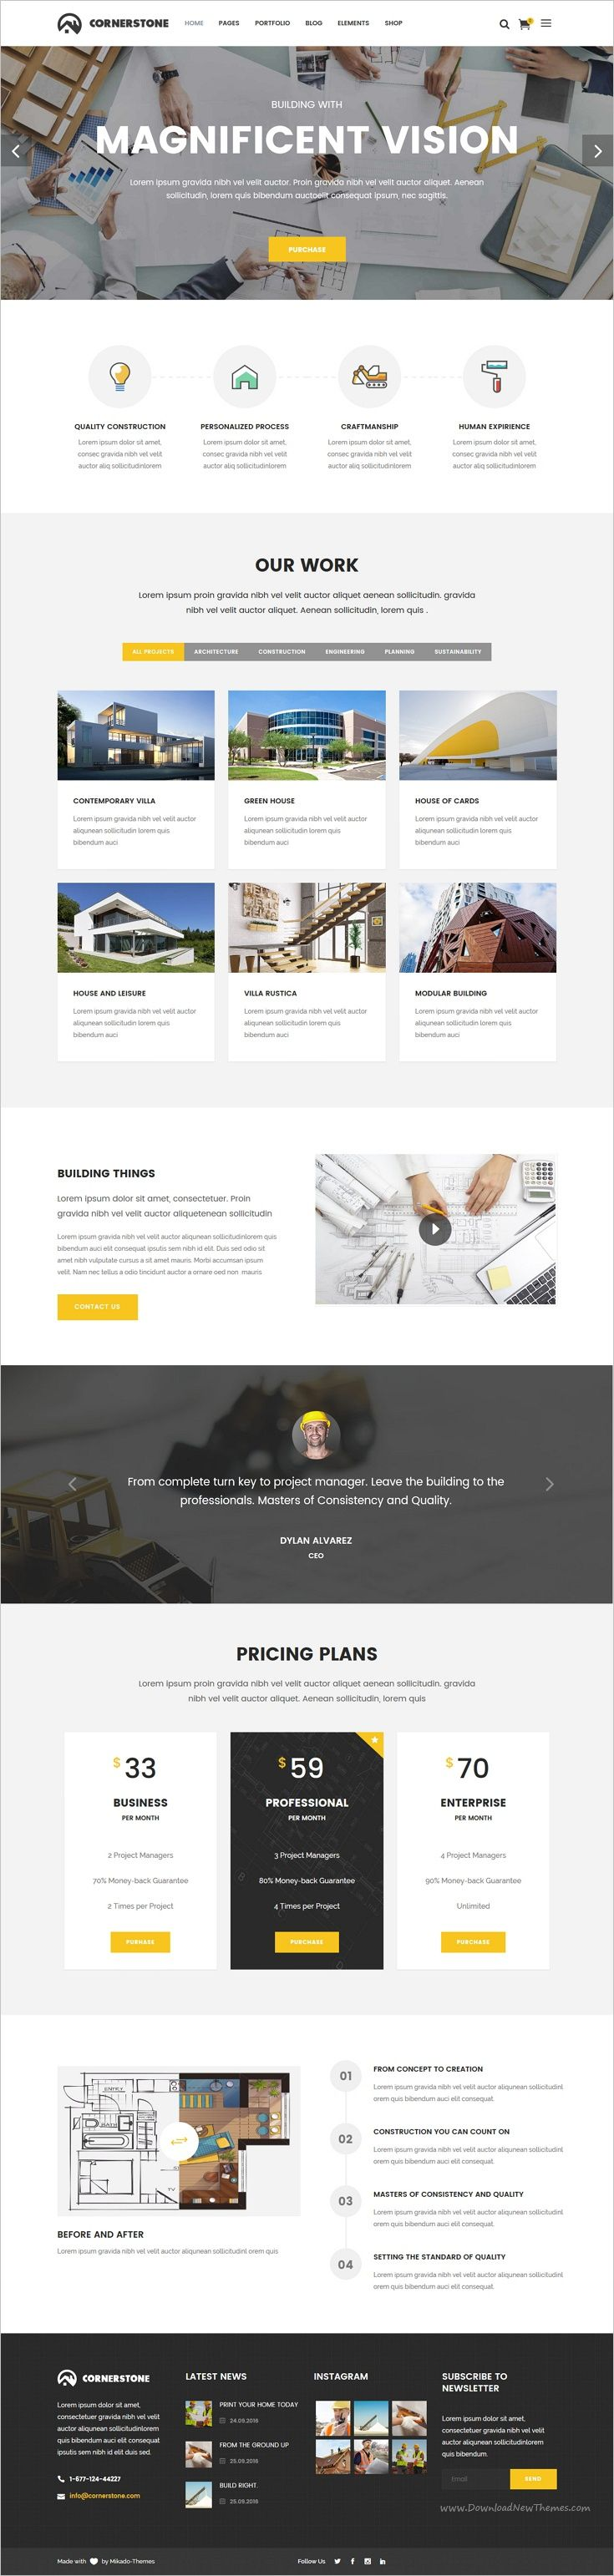 Cornerstone is a professional responsive #WordPress theme for #Construction, Builder & Contractor companies #website with 10 unique homepage layouts download now➩ https://themeforest.net/item/cornerstone-a-professional-construction-builder-contractor-theme/18939827?ref=Datasata